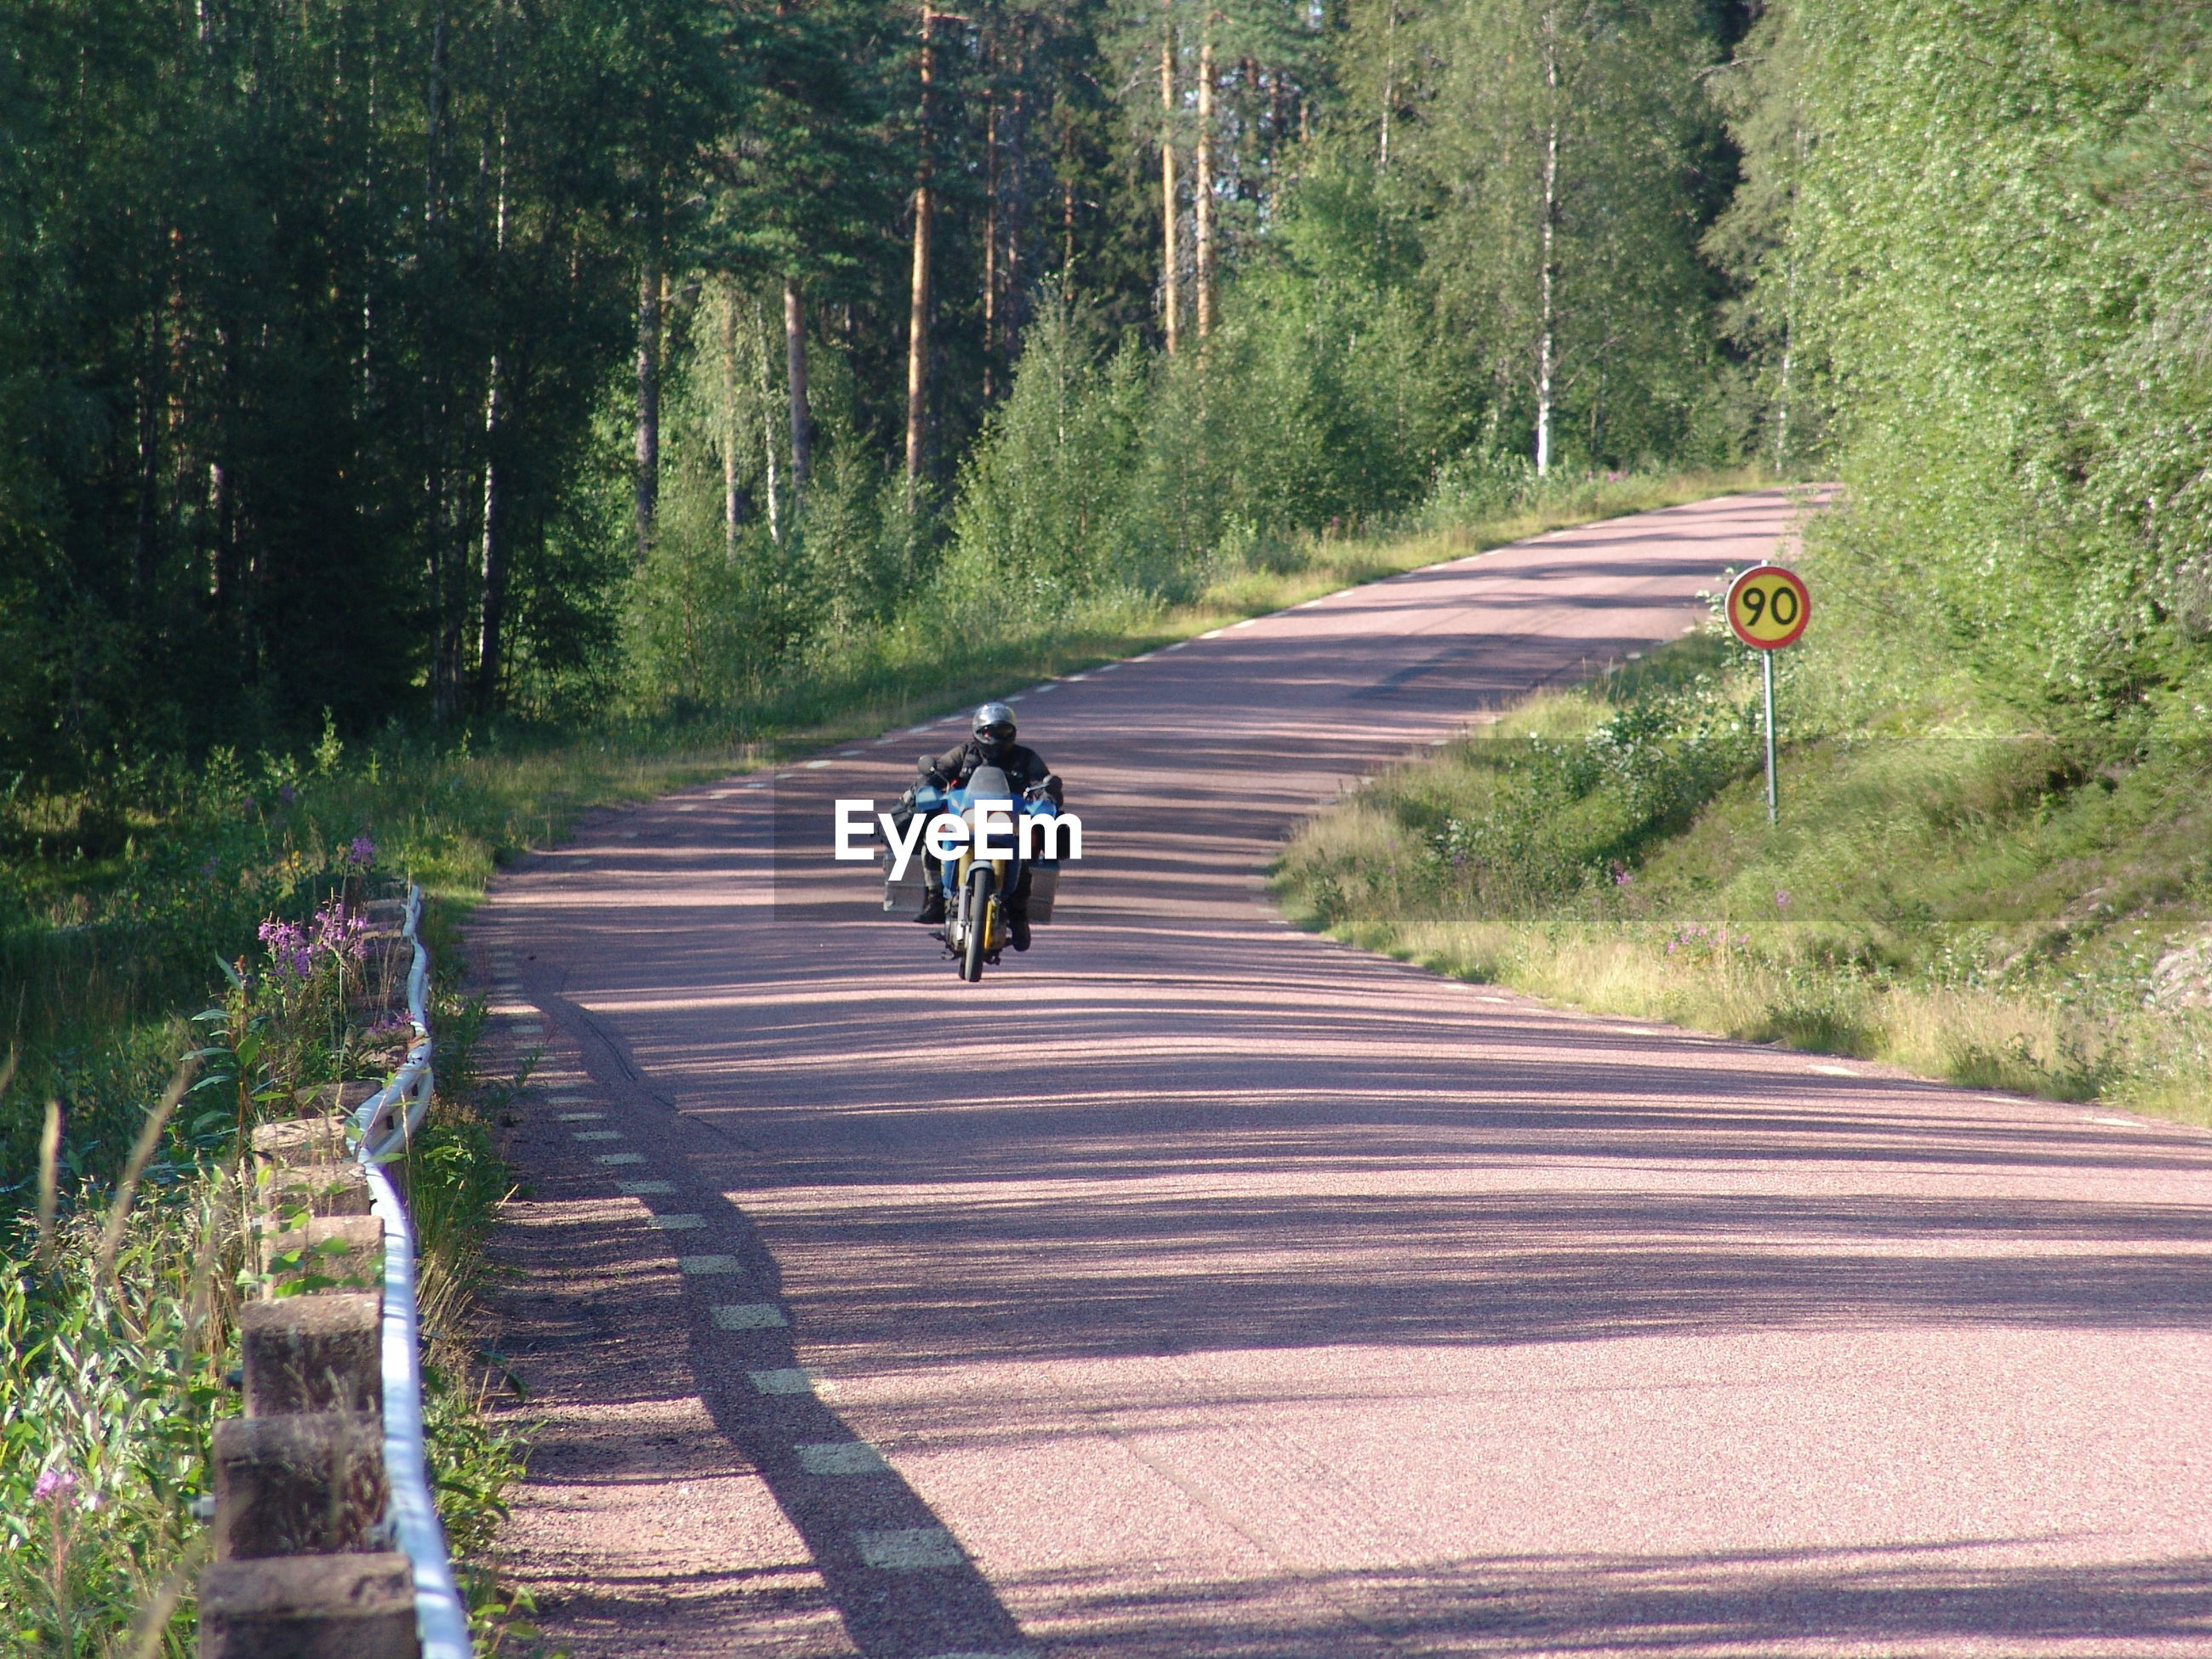 Person riding bicycle on street amidst trees